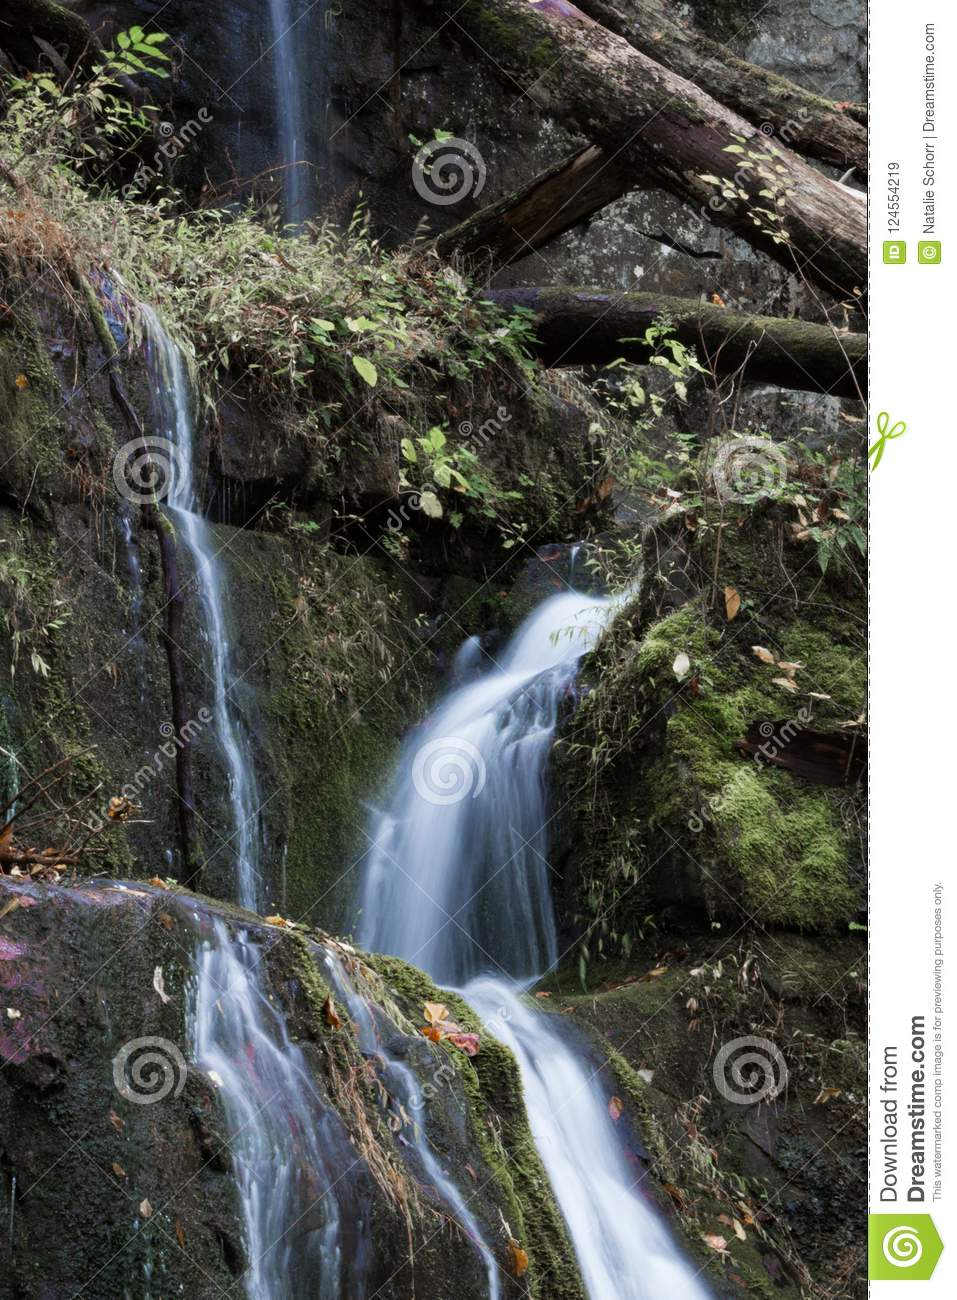 Multiple Streams Of Water Cascading Over Moss Covered Rocks